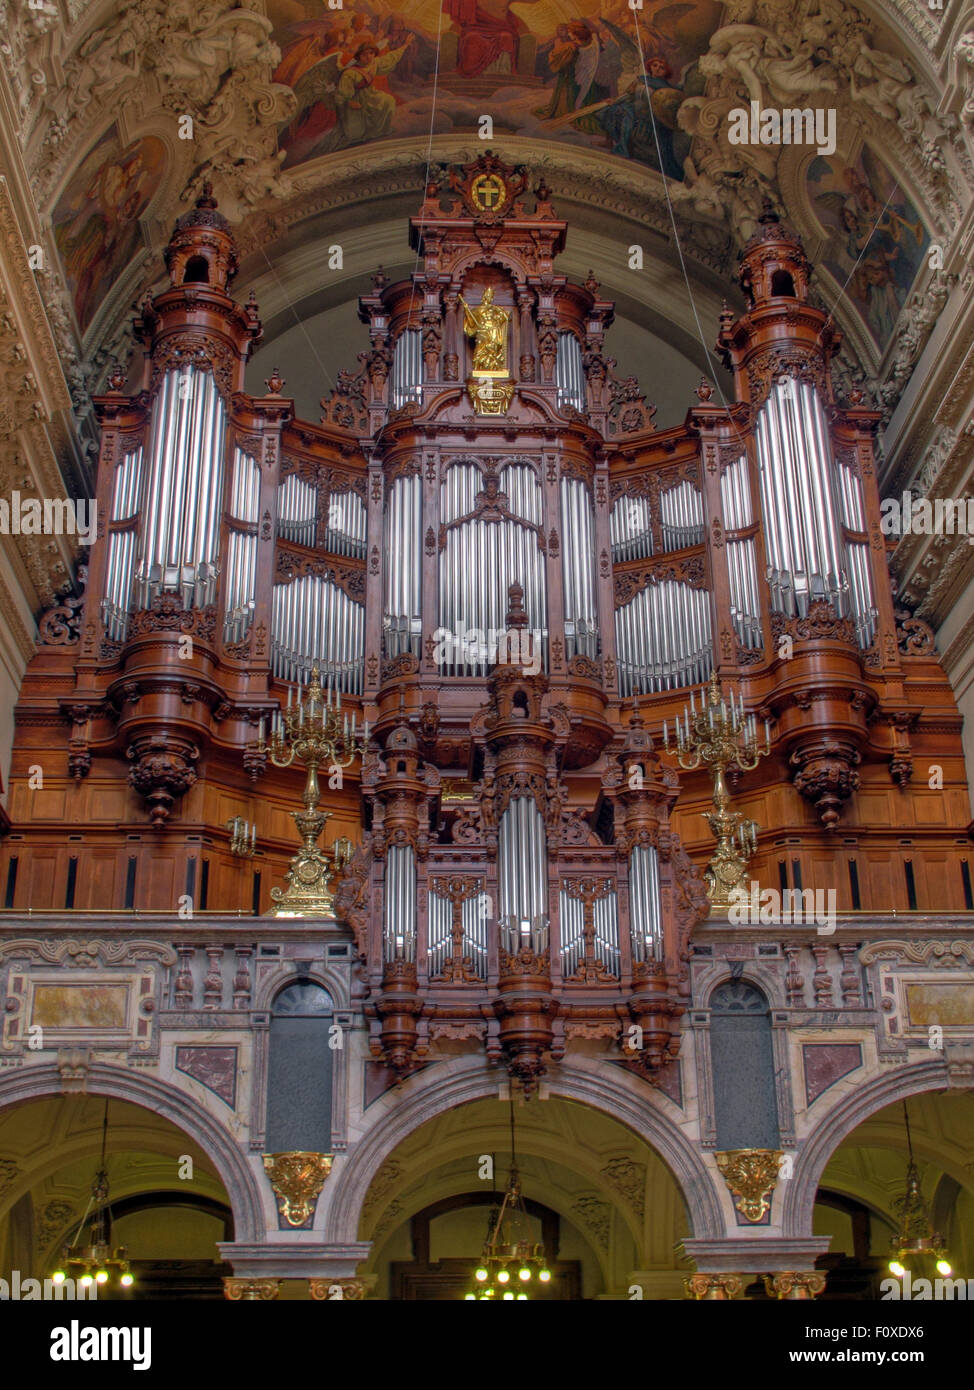 Prussian,pipe,organ,builder,German,Germany,Wilhelm,Carl,Friedrich,city,religion,religious,his,final,great,masterpiece,Manufactory,Berliner,Dom,Am Lustgarten,10178,Mitte,tall,wide,shot,Supreme,Parish,museum,island,detail,European,evangelical,evangelistic,faith,interior,indoor,Berliner Dom,GoTonySmith,color,colour,music,musical,nobody,old,older,wood,wooden,instrument,splendor,splendour,supreme,unesco,world,tourist,tourism,Buy Pictures of,Buy Images Of